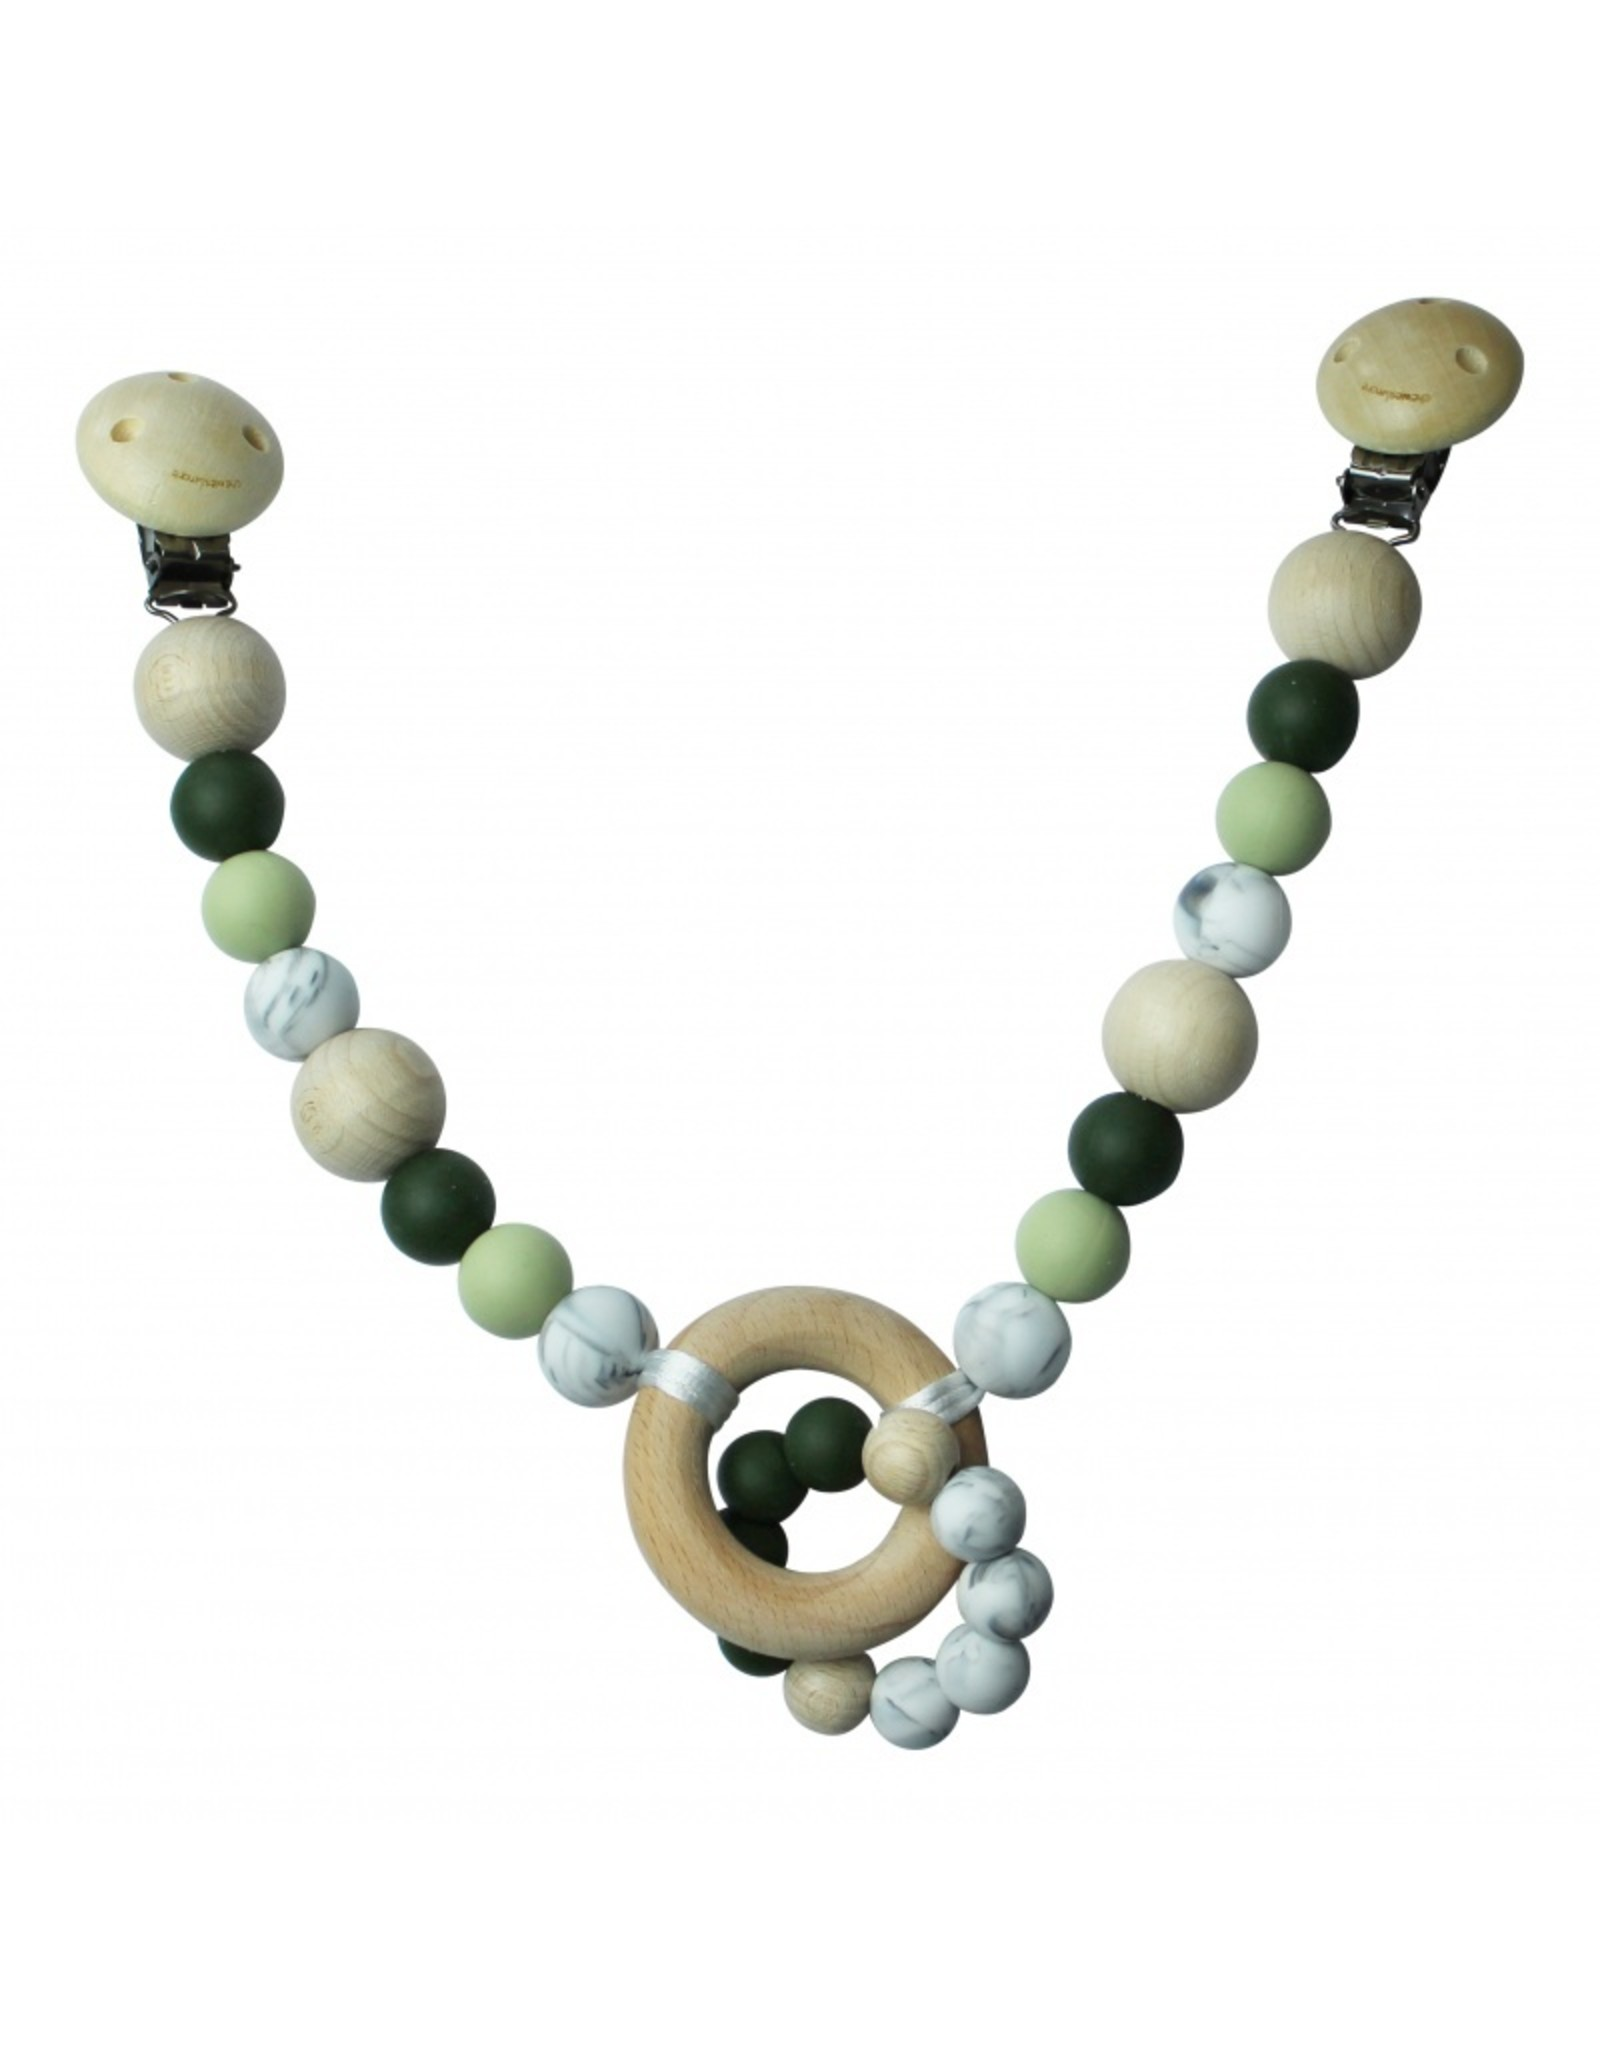 Chewies and More Chewies&More Wagen Spanners Deep Green/Oud groen/Marble